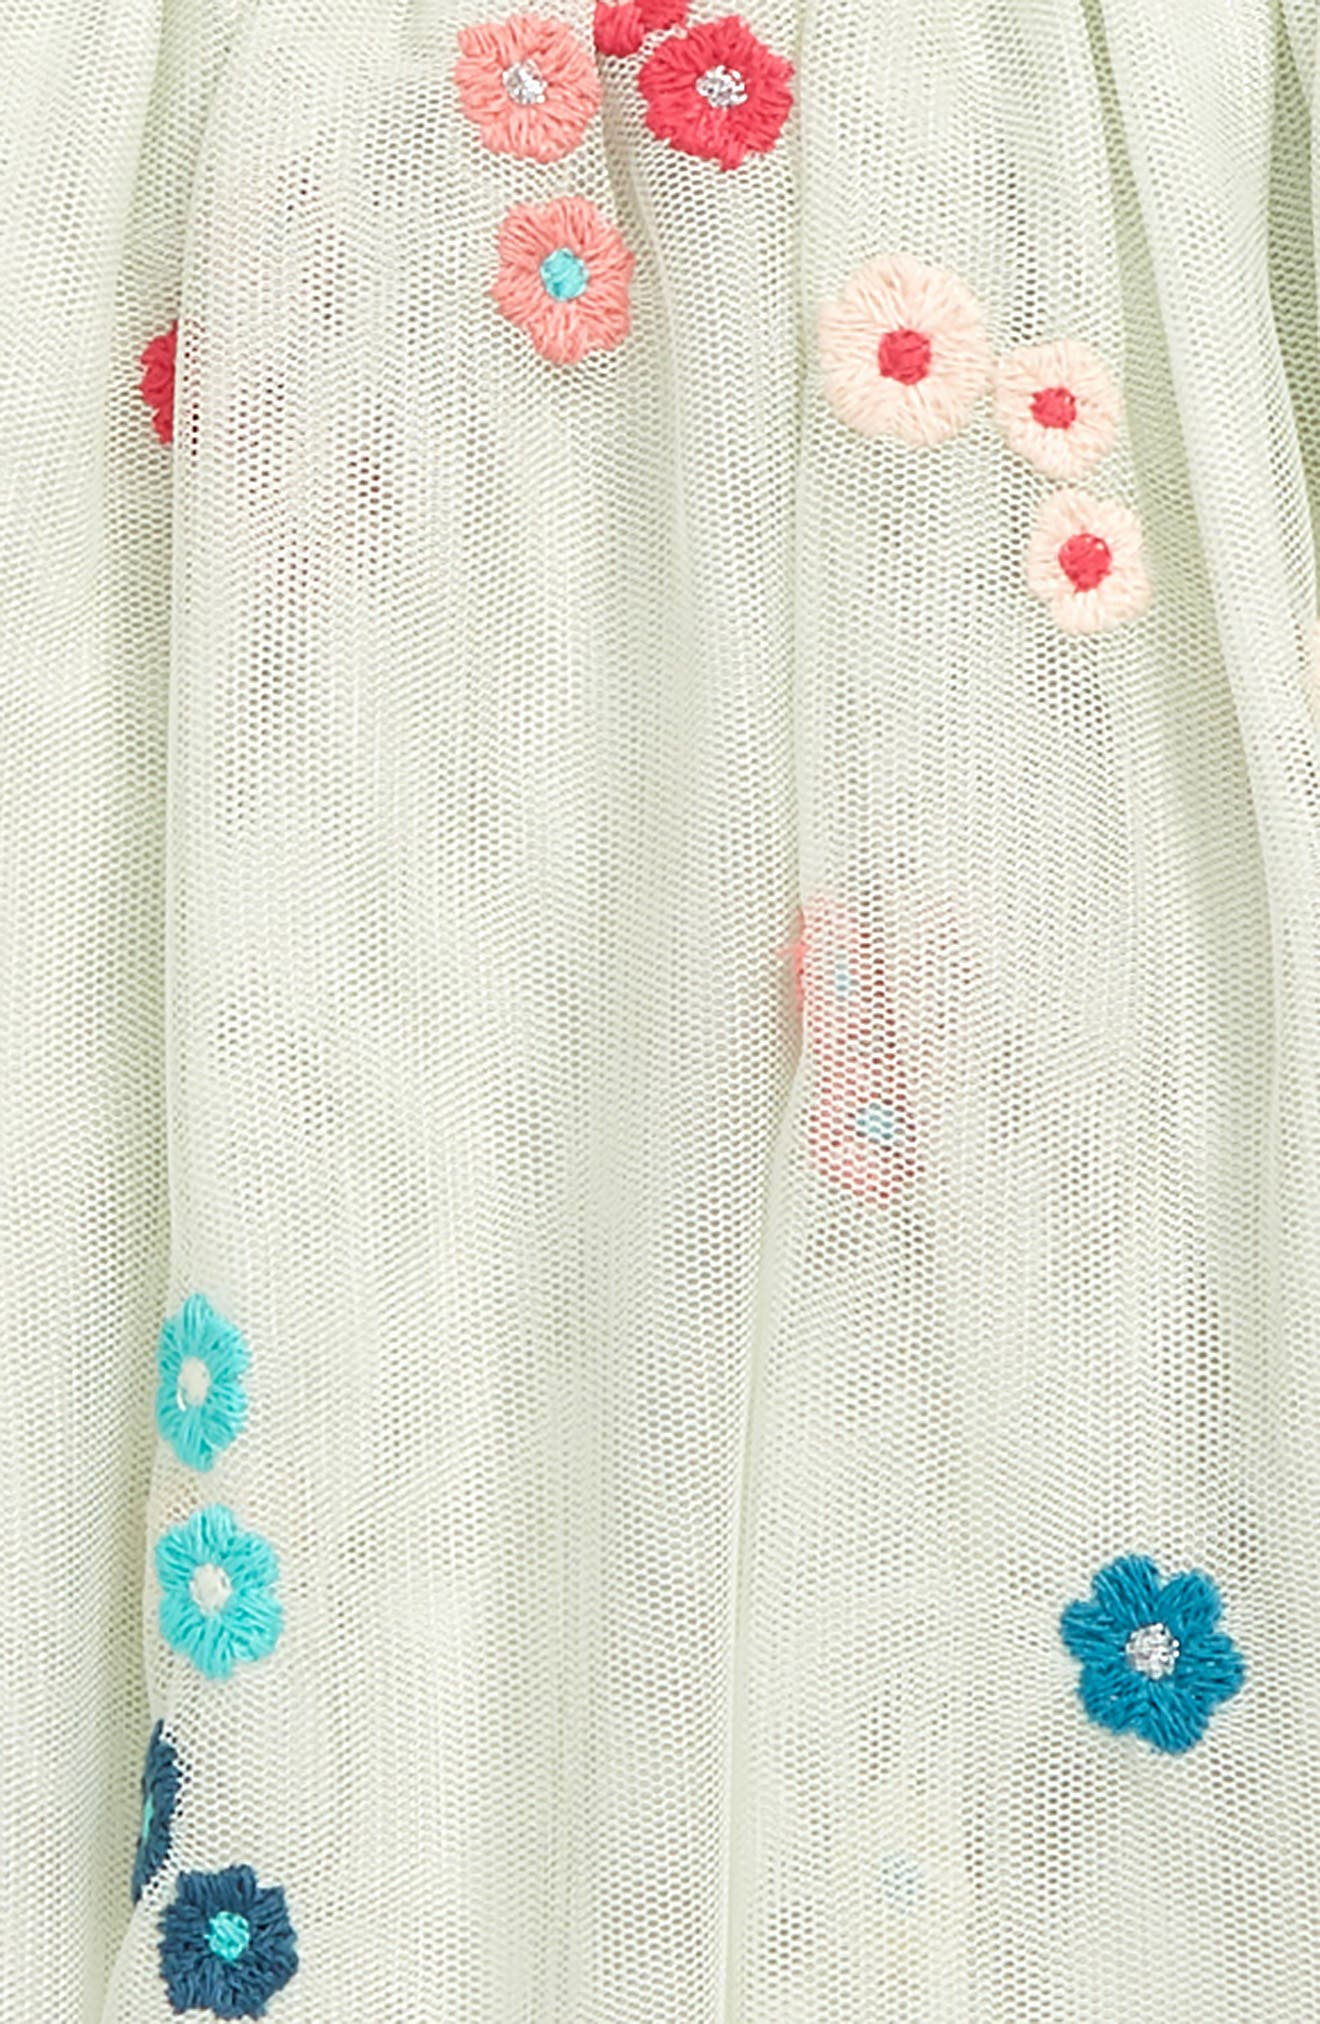 Victoria Embroidered Mesh Skirt,                             Alternate thumbnail 2, color,                             337